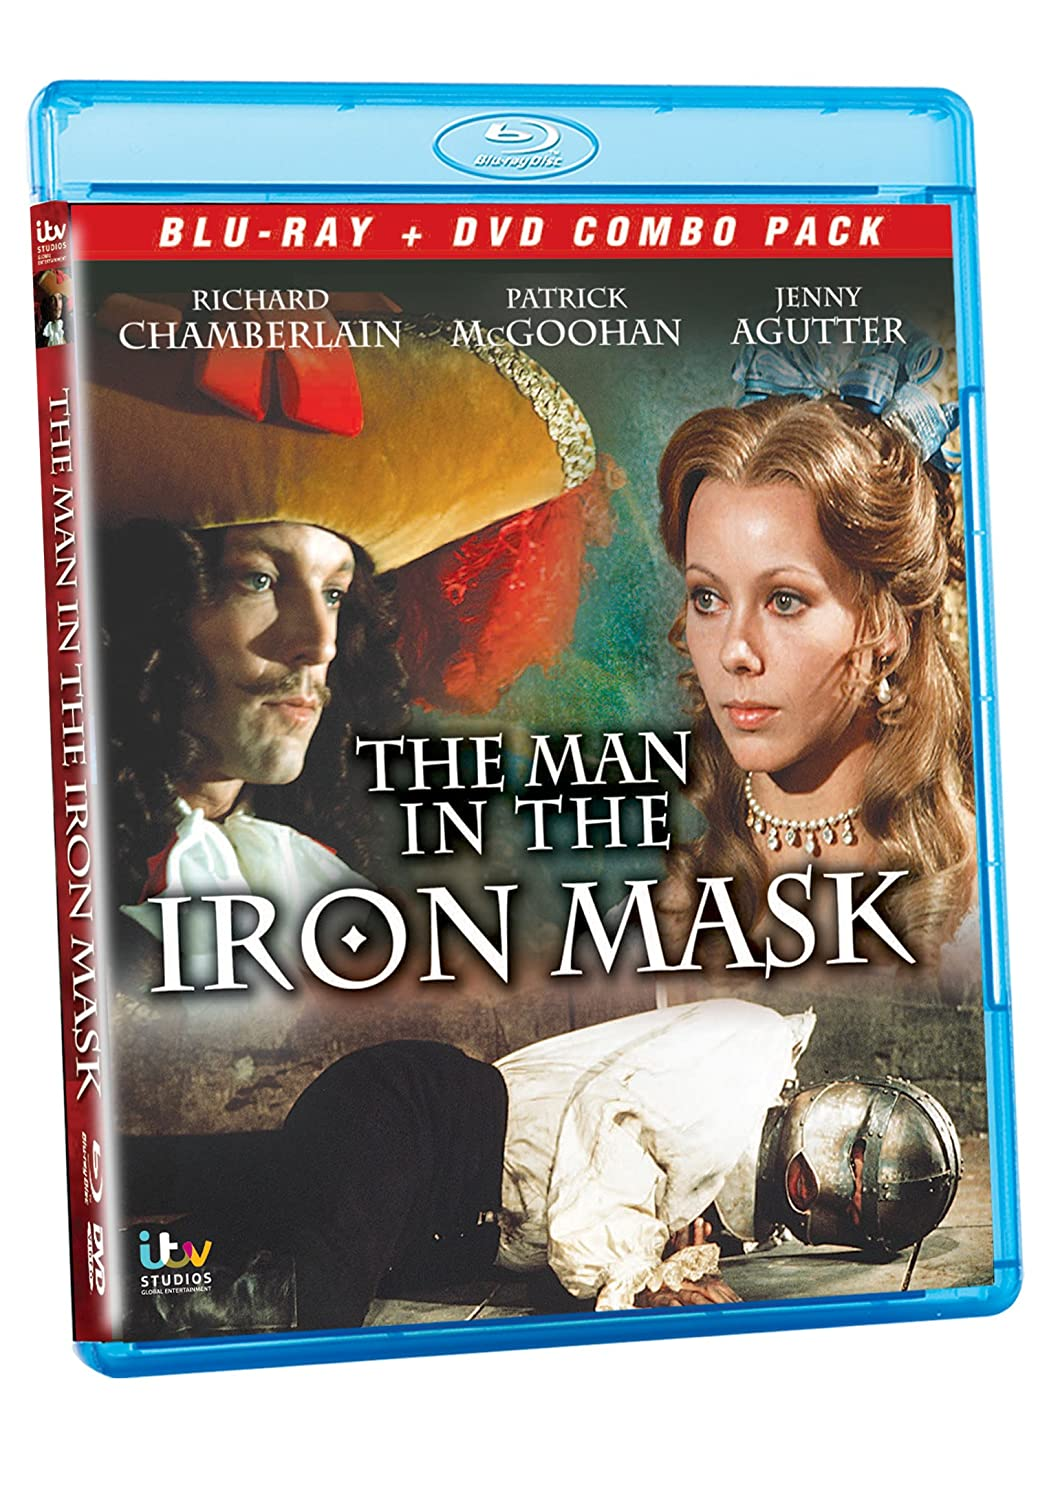 The Man in the Iron Mask [Francia] [Blu-ray]: Amazon.es: Richard Chamberlain, Louis Jourdan, Esmond Knight, Godfrey Quigley, Denis Lawson, Anne Zelda, ...